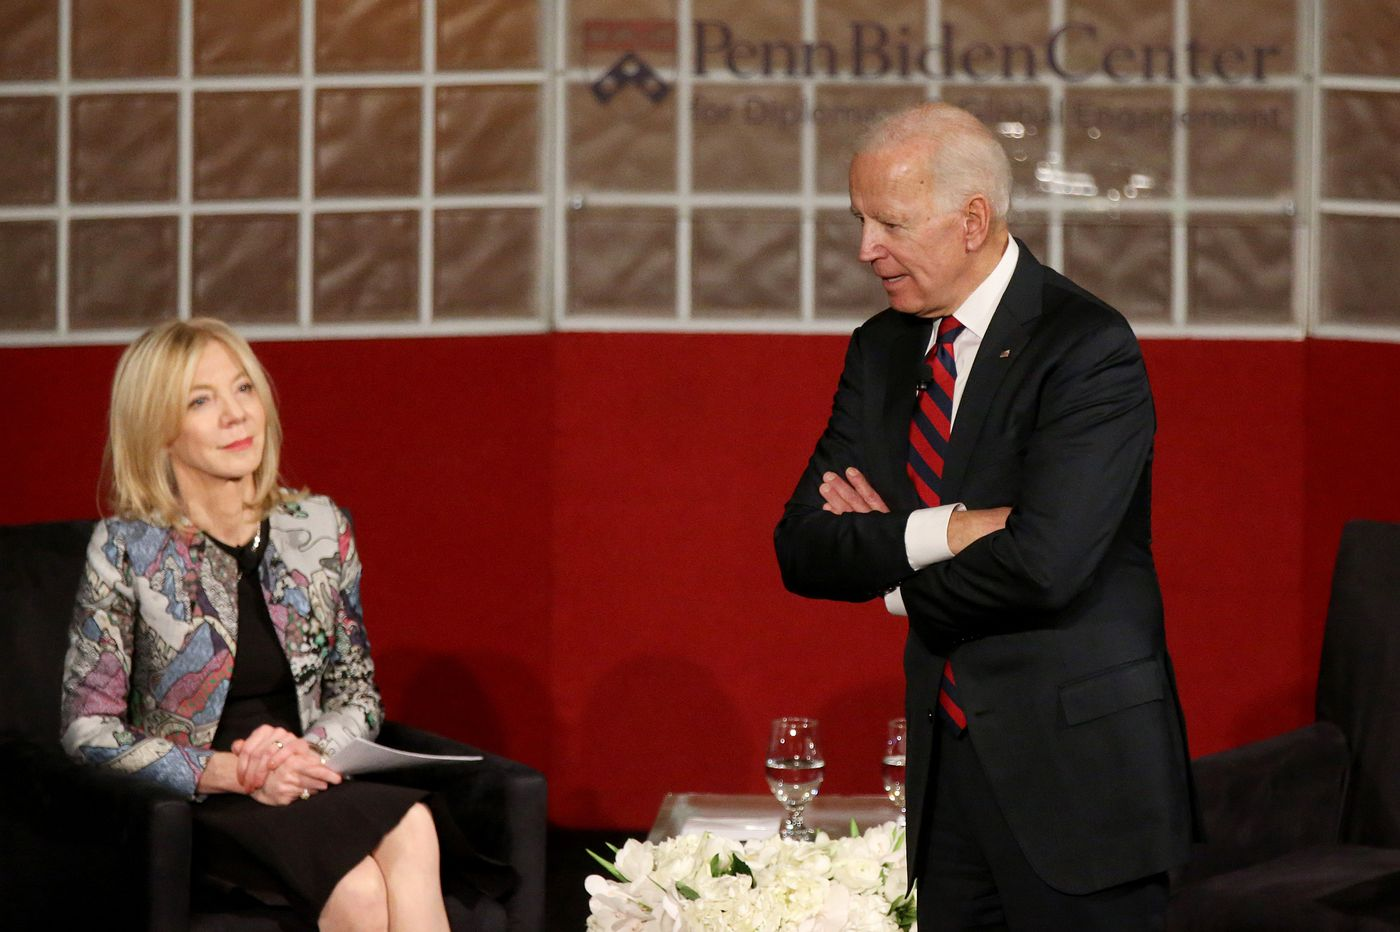 Does Penn have a Joe Biden problem? | Opinion